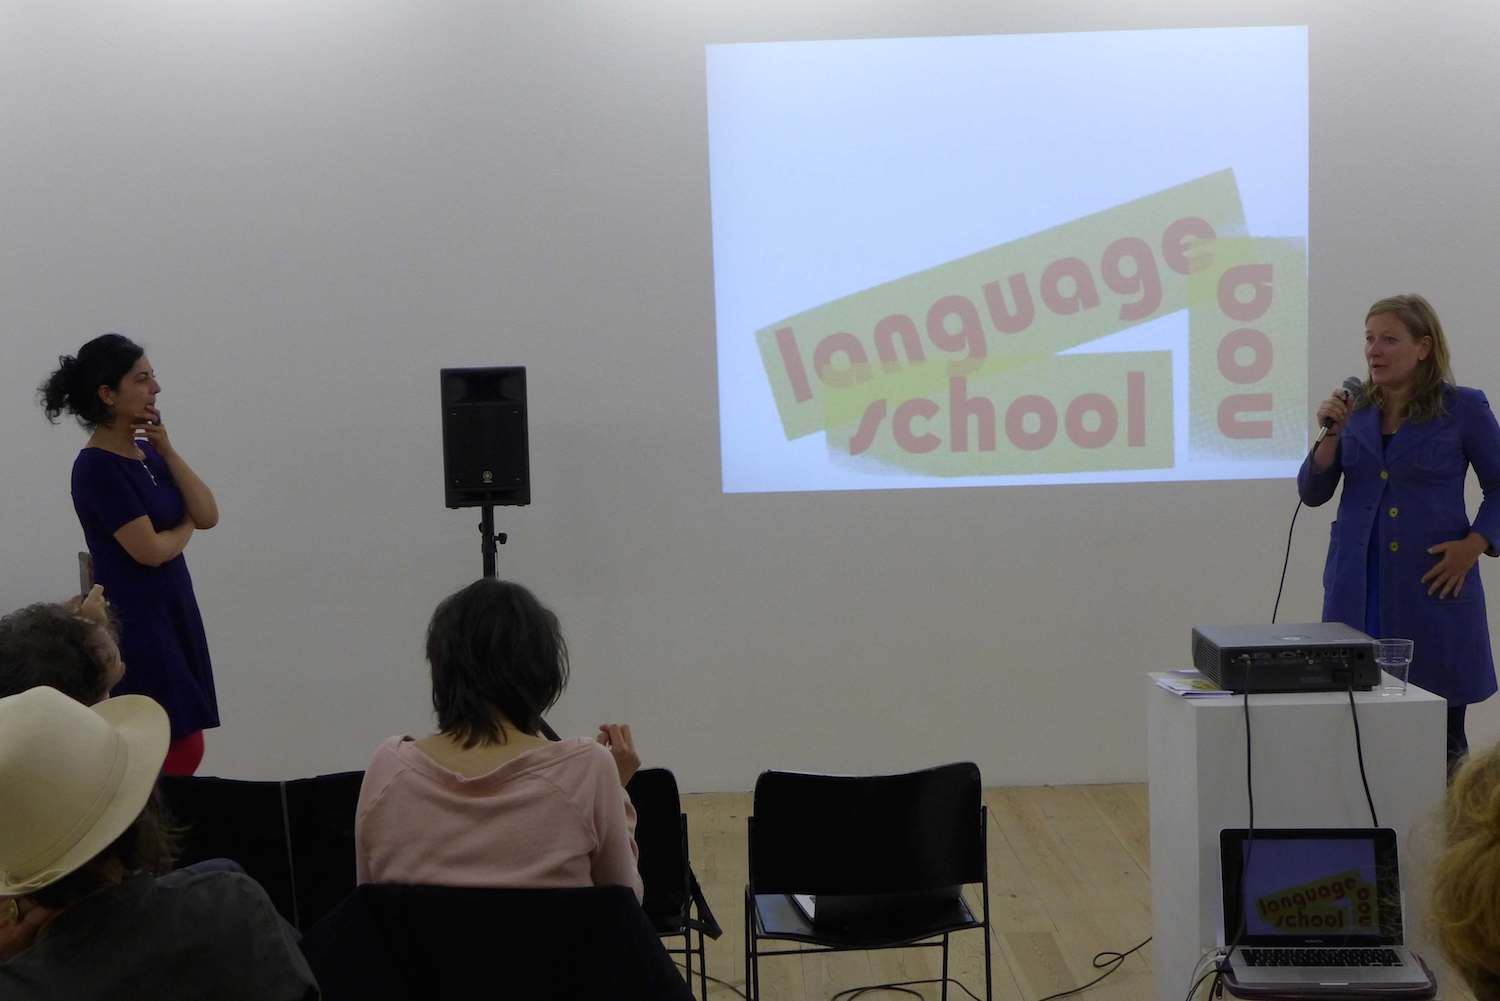 noa language school > CURATED PROJECT, 2013